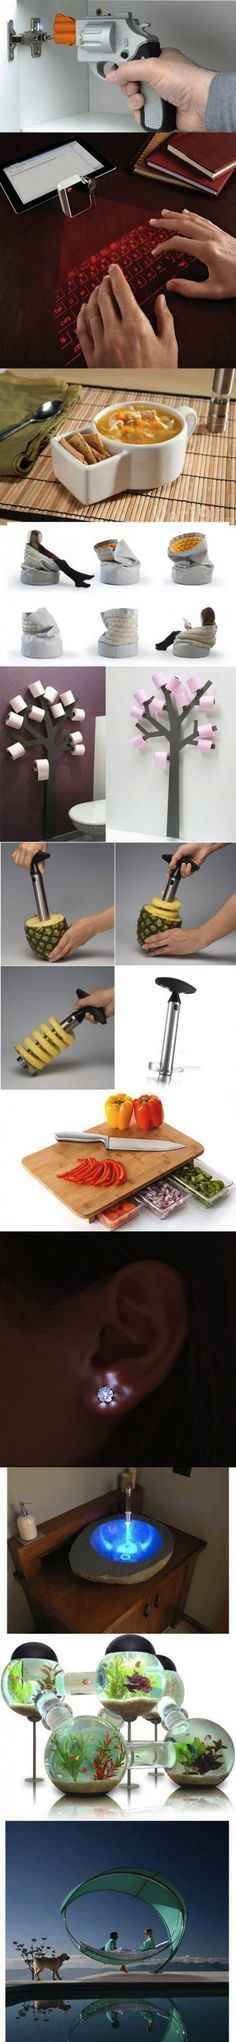 Super duper cool inventions. I WANT the drill and fish tank!